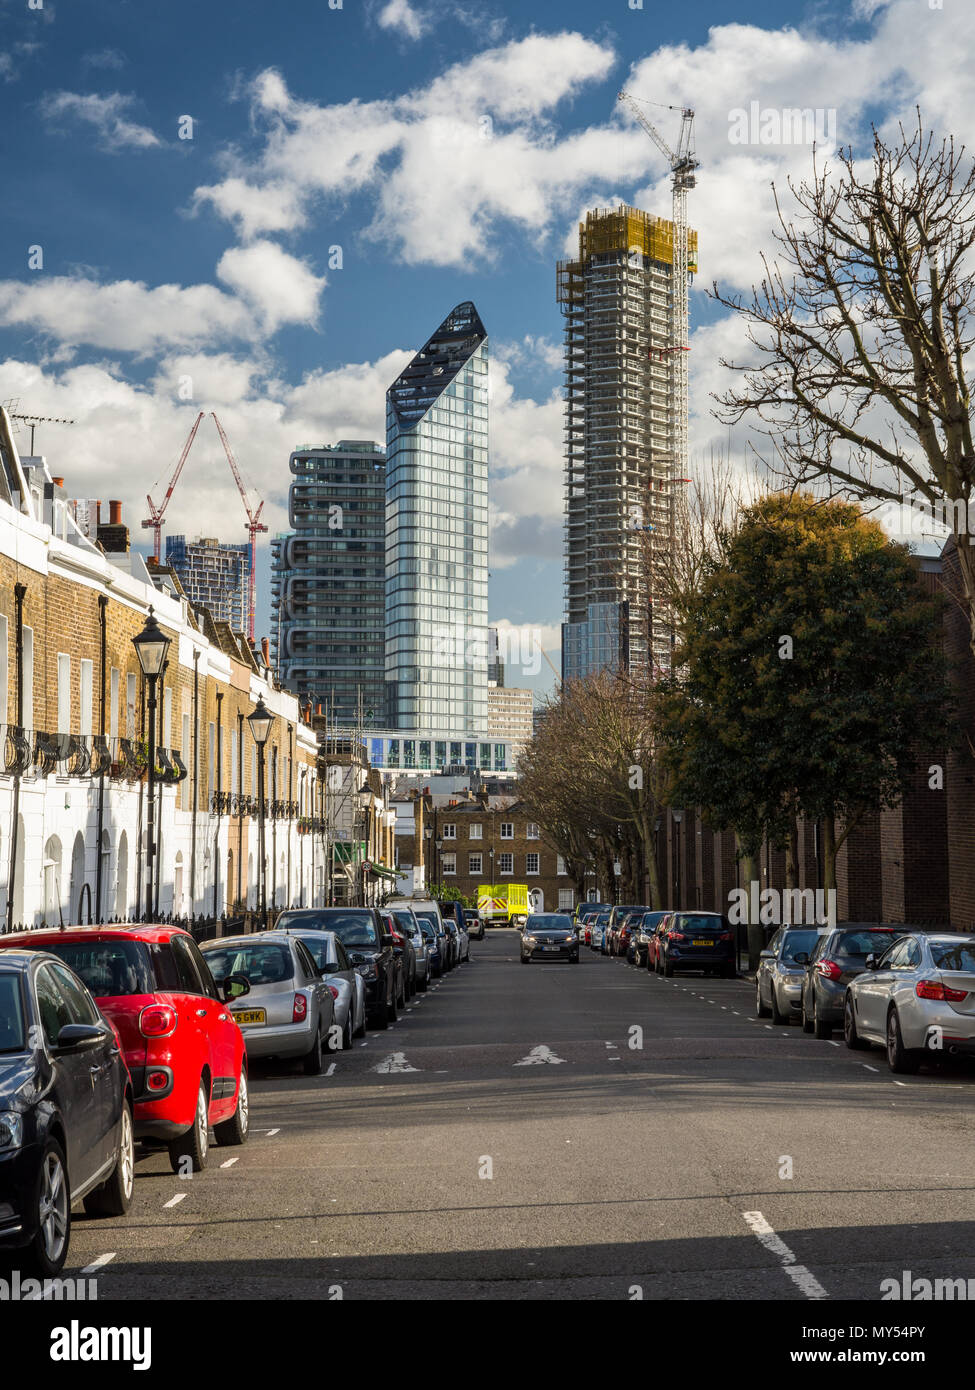 London, England, UK - February 12, 2018: A cluster of new high rise apartment buildings stands with construction partially completed on City Road, wit - Stock Image